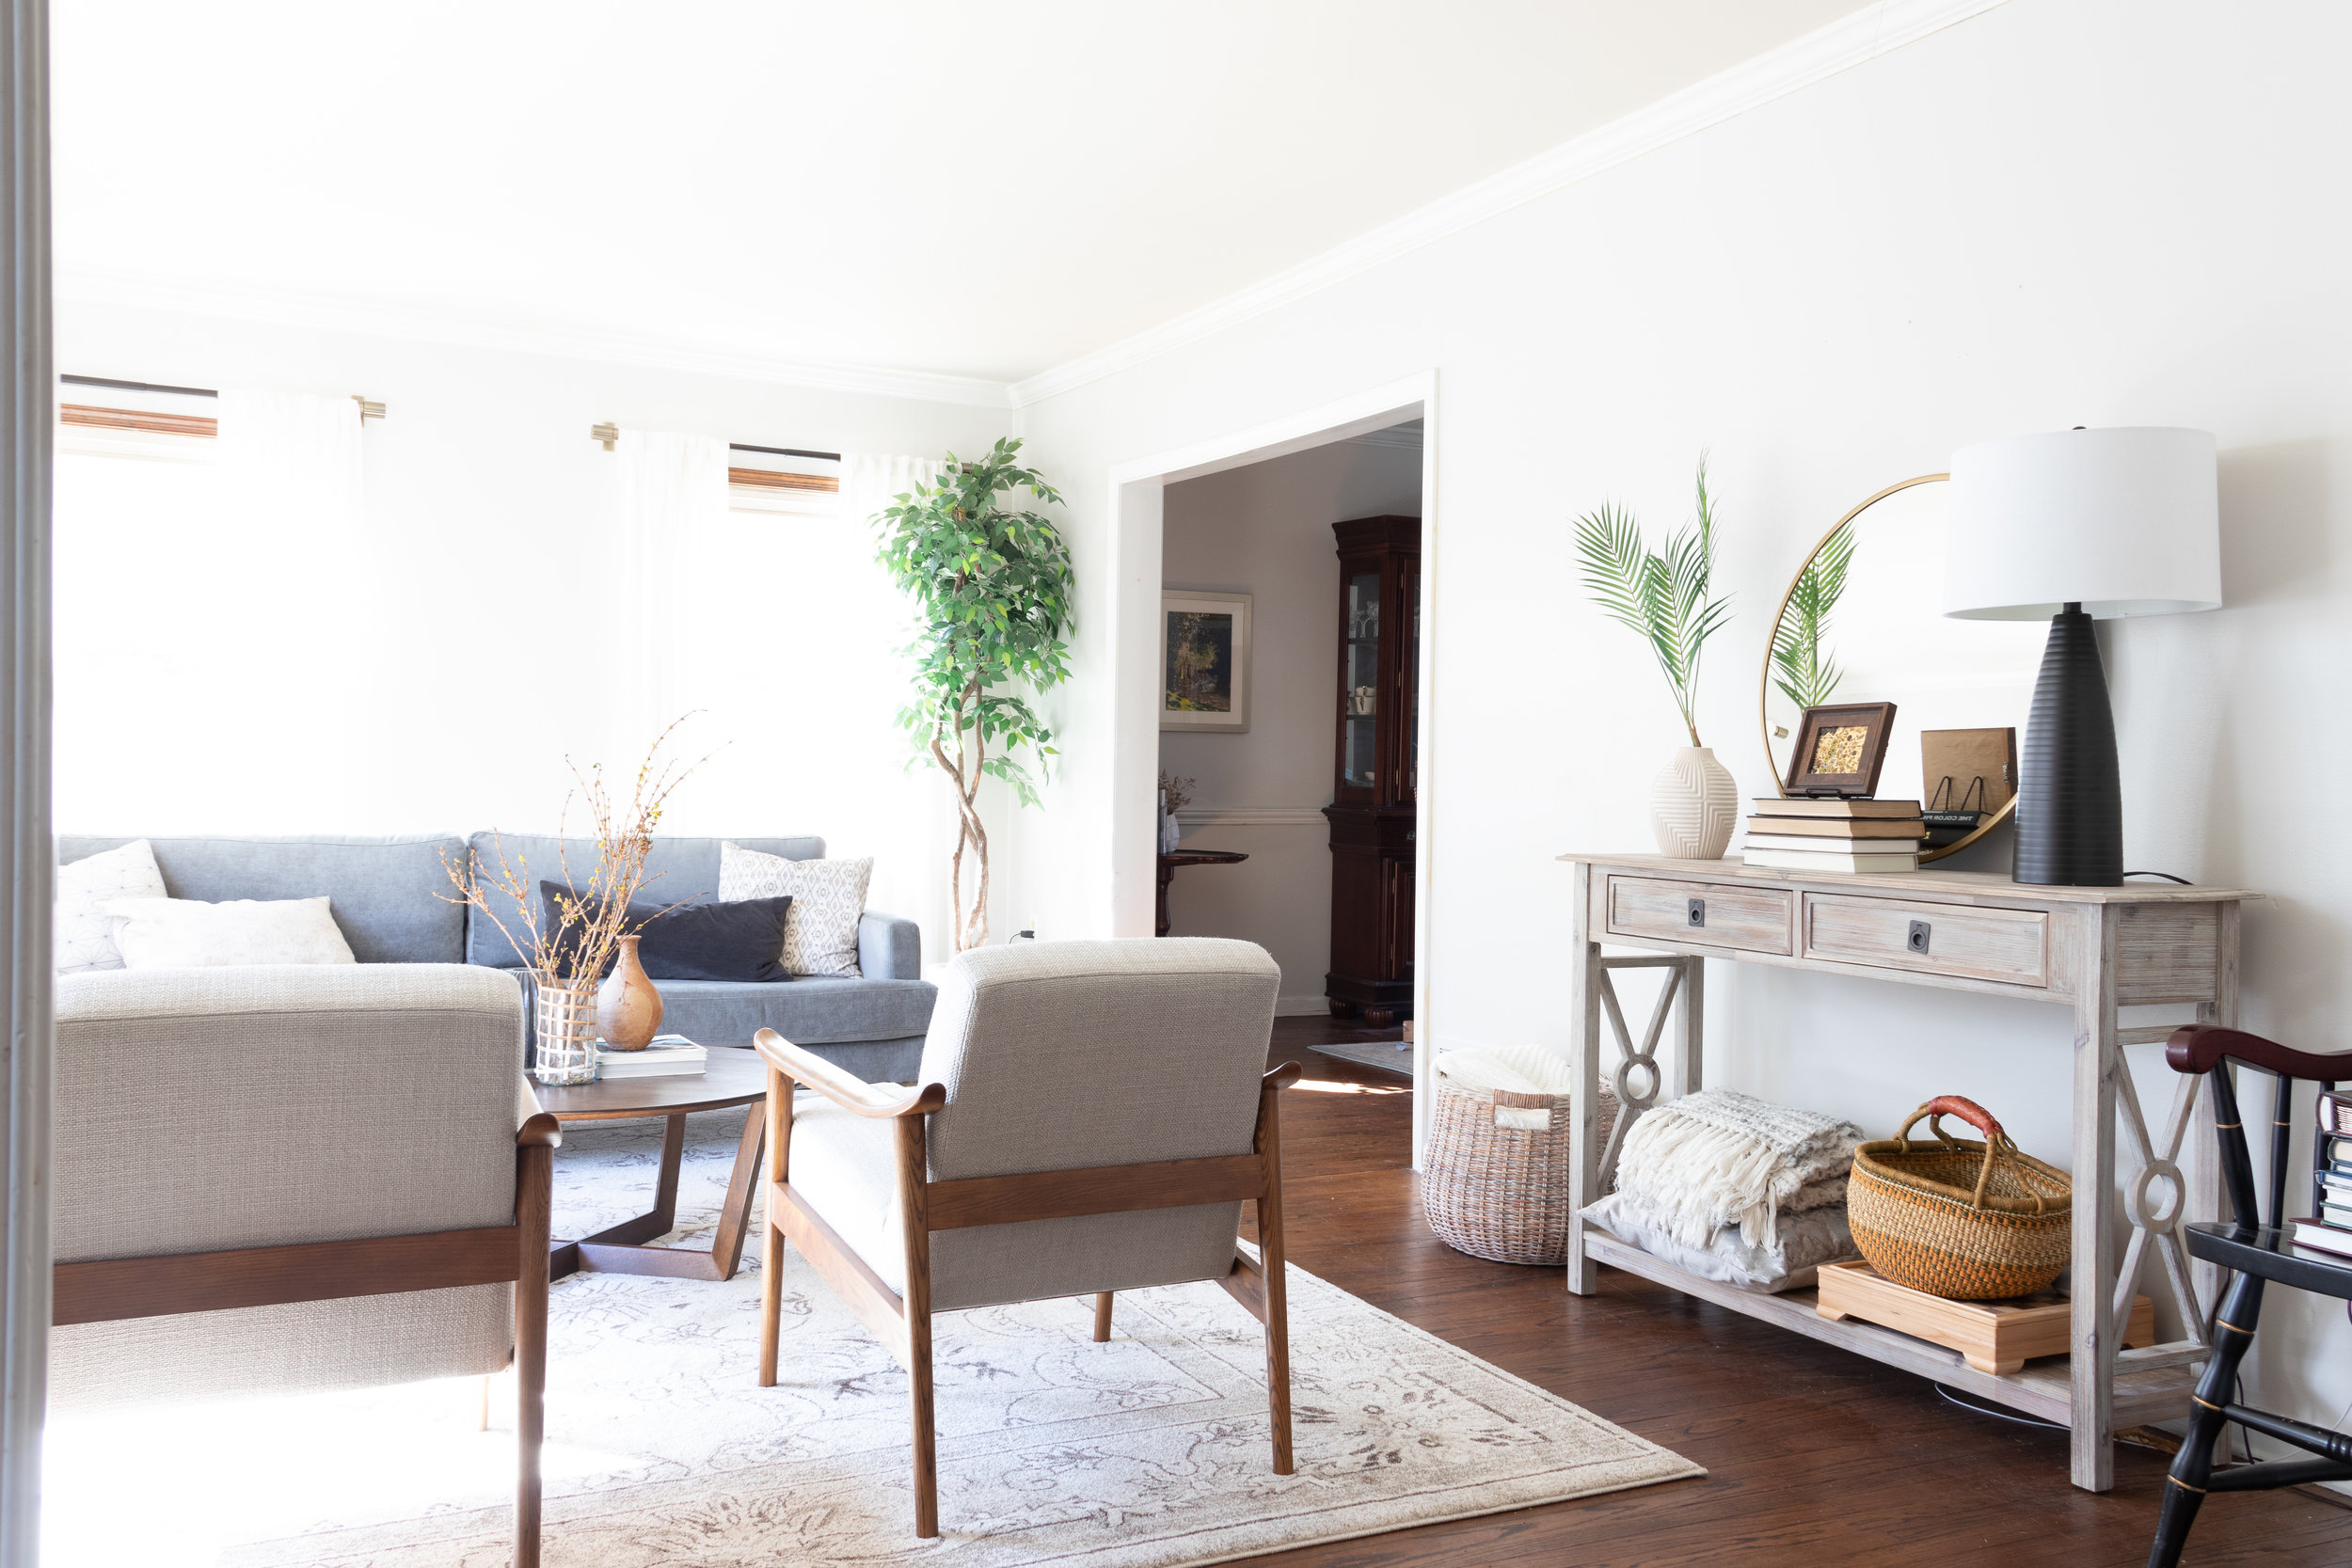 From Boring & Brown to Modern & Cozy - Amazing before / after of my parent's living room. Check out how I was able to stay true to my design aesthetic while also giving my parent's a room they love.